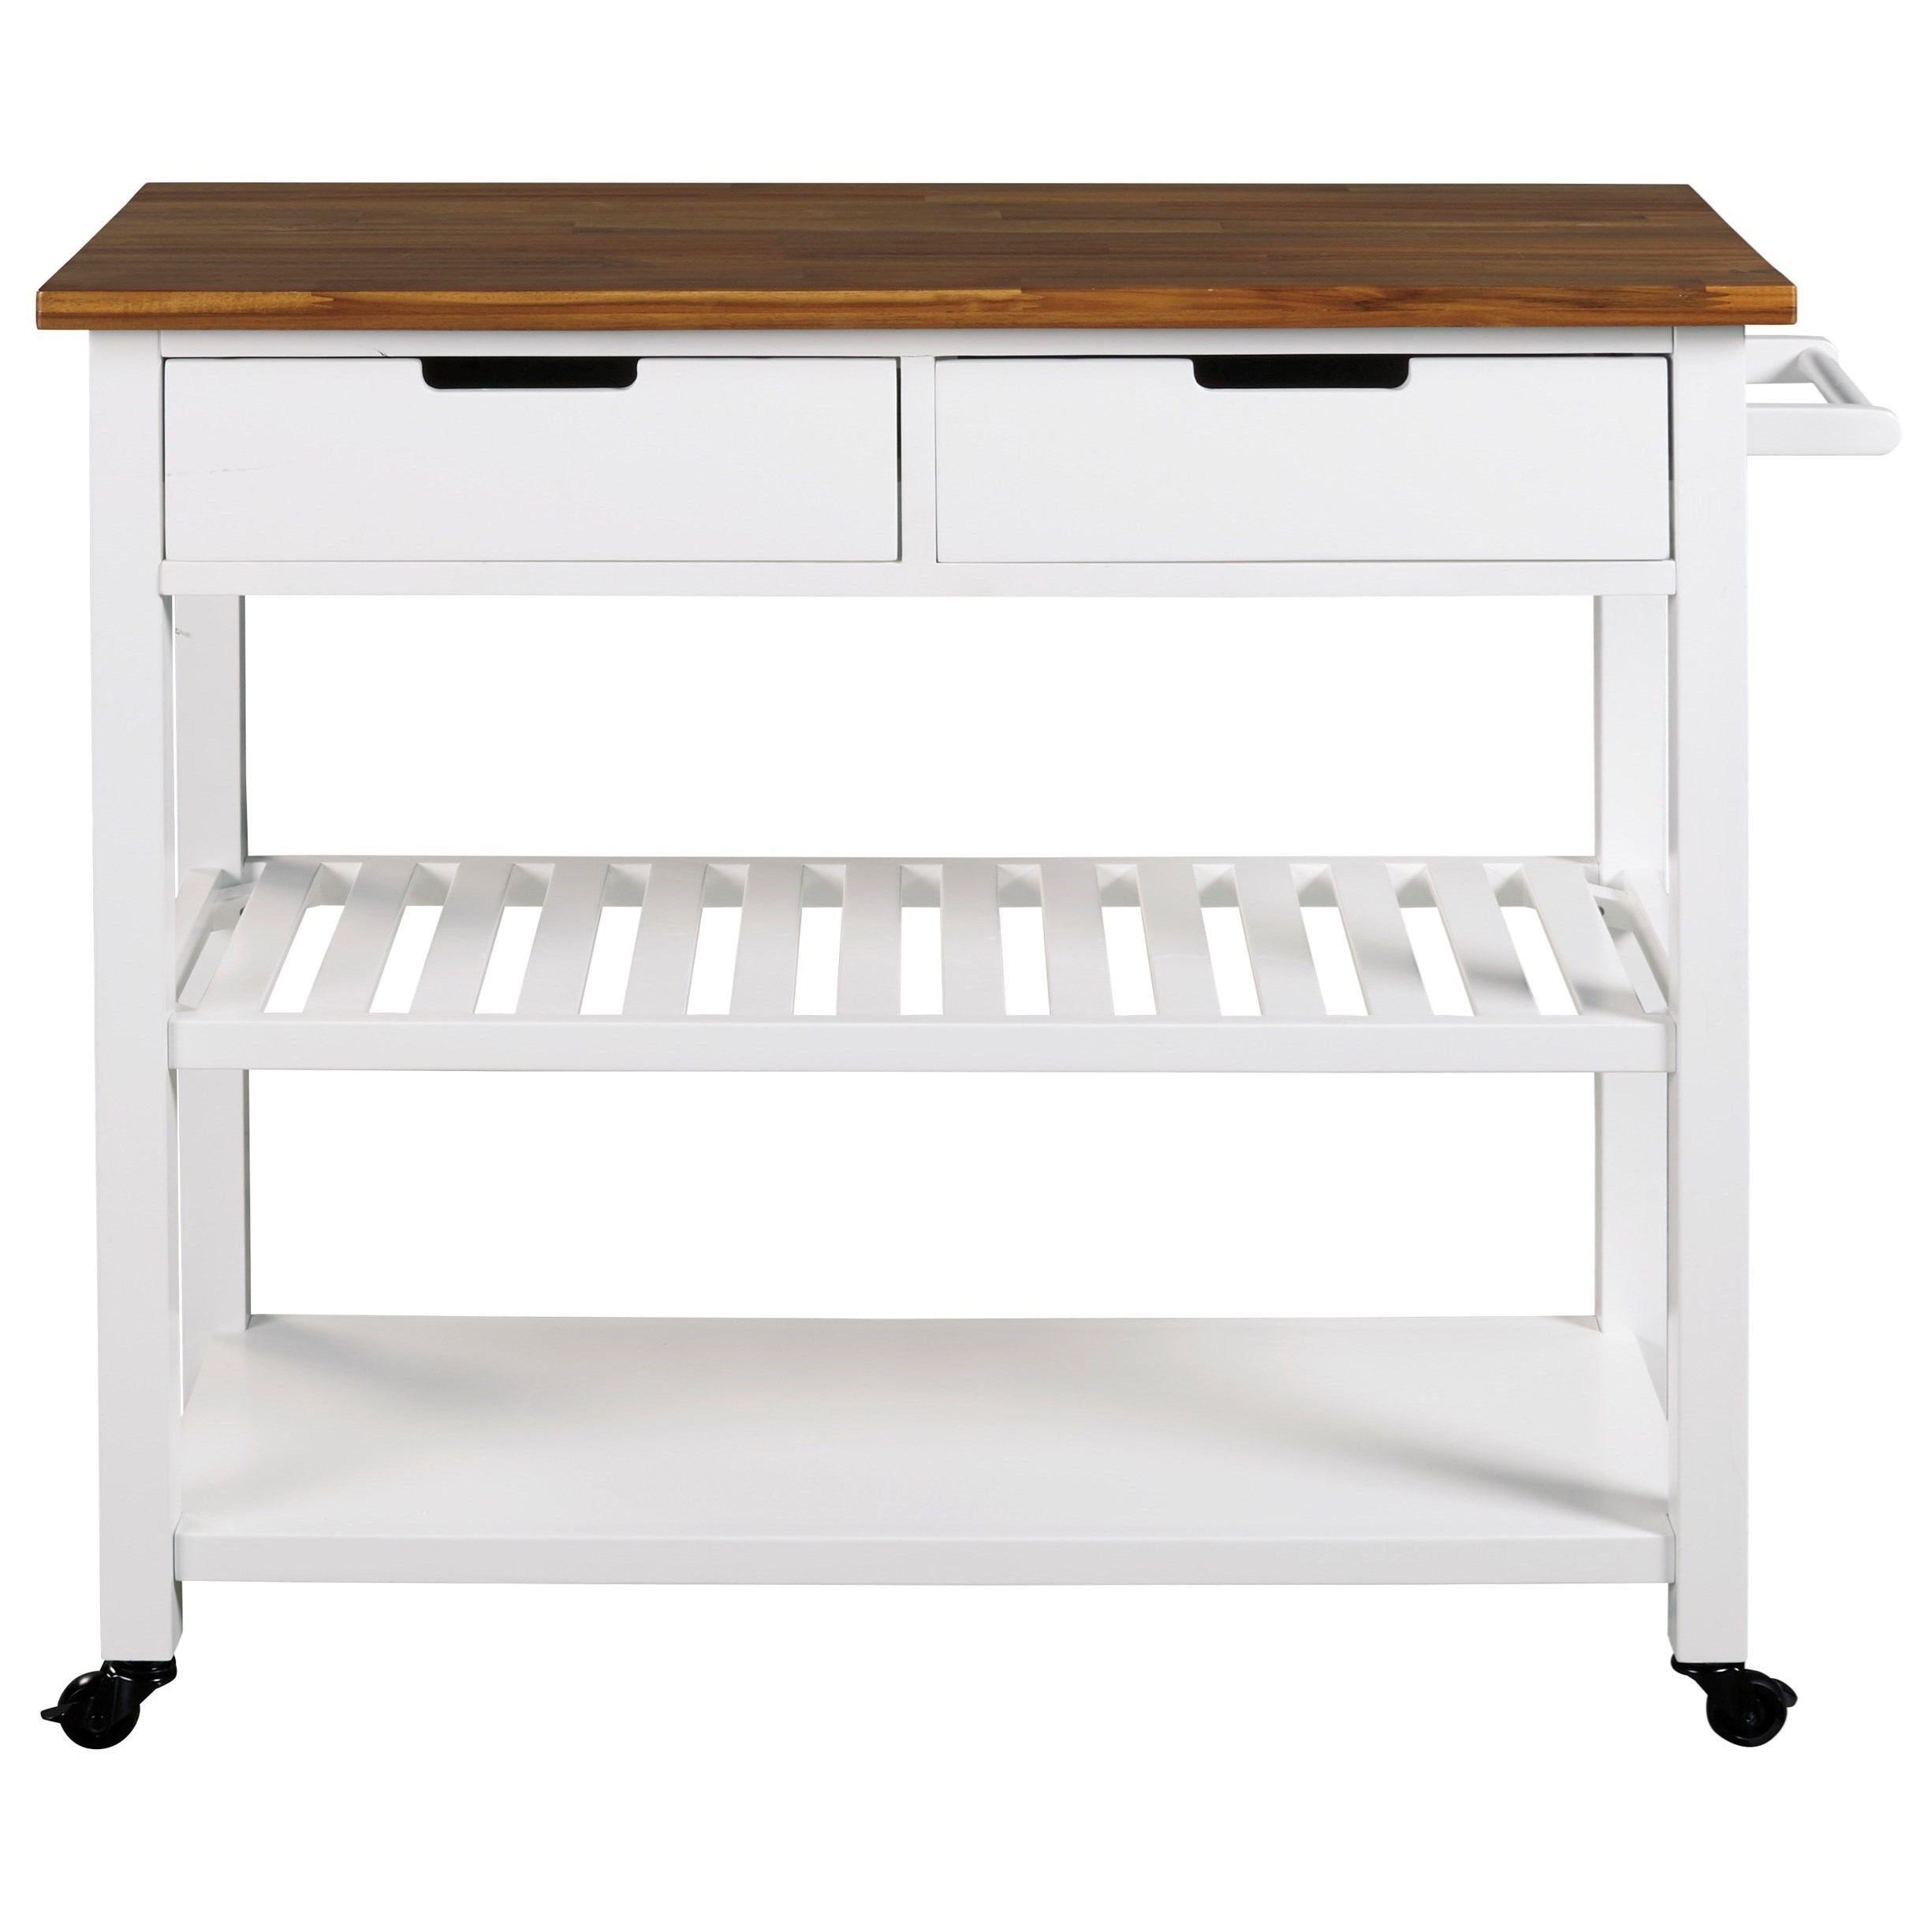 Kitchen Cart with Two-Tone Finish and Casters